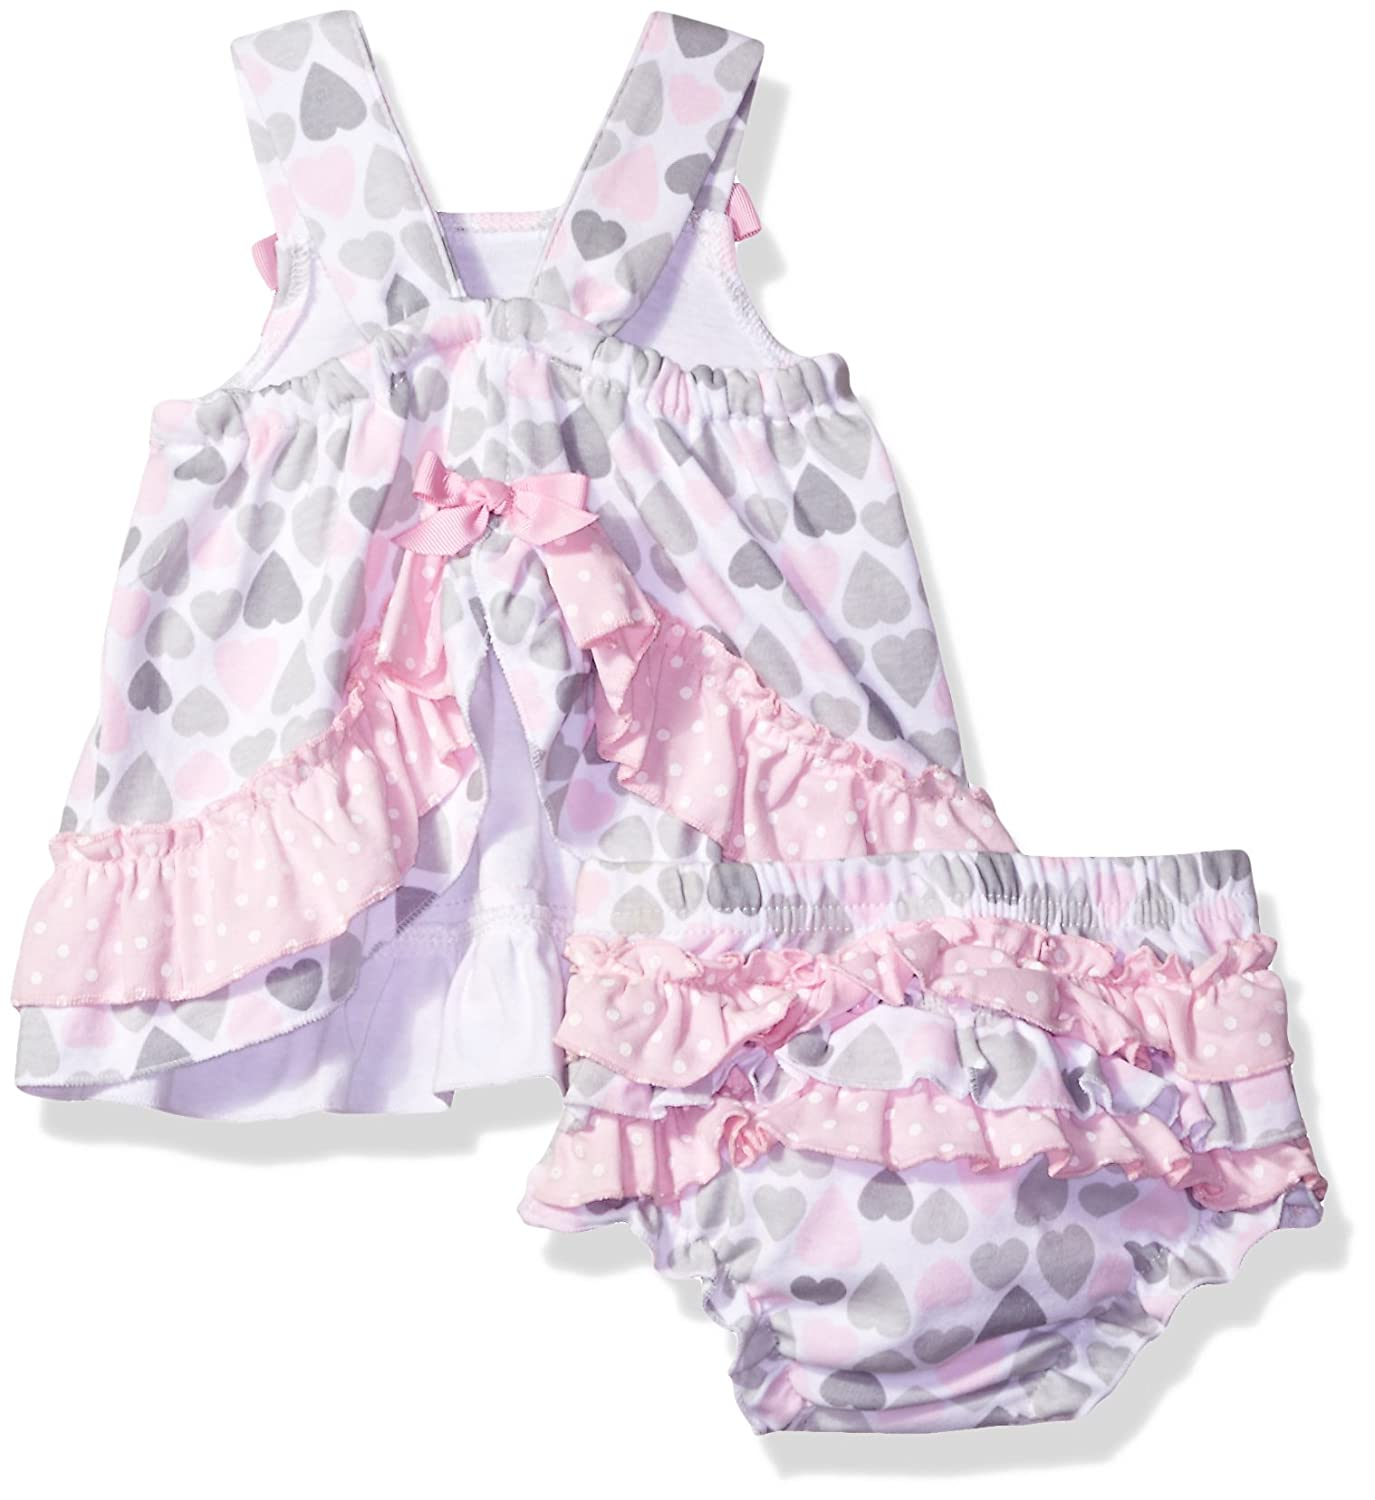 Baby Essentials Baby Girls 2 Piece Dress and Diaper Cover Set Hearts and Polka Dot